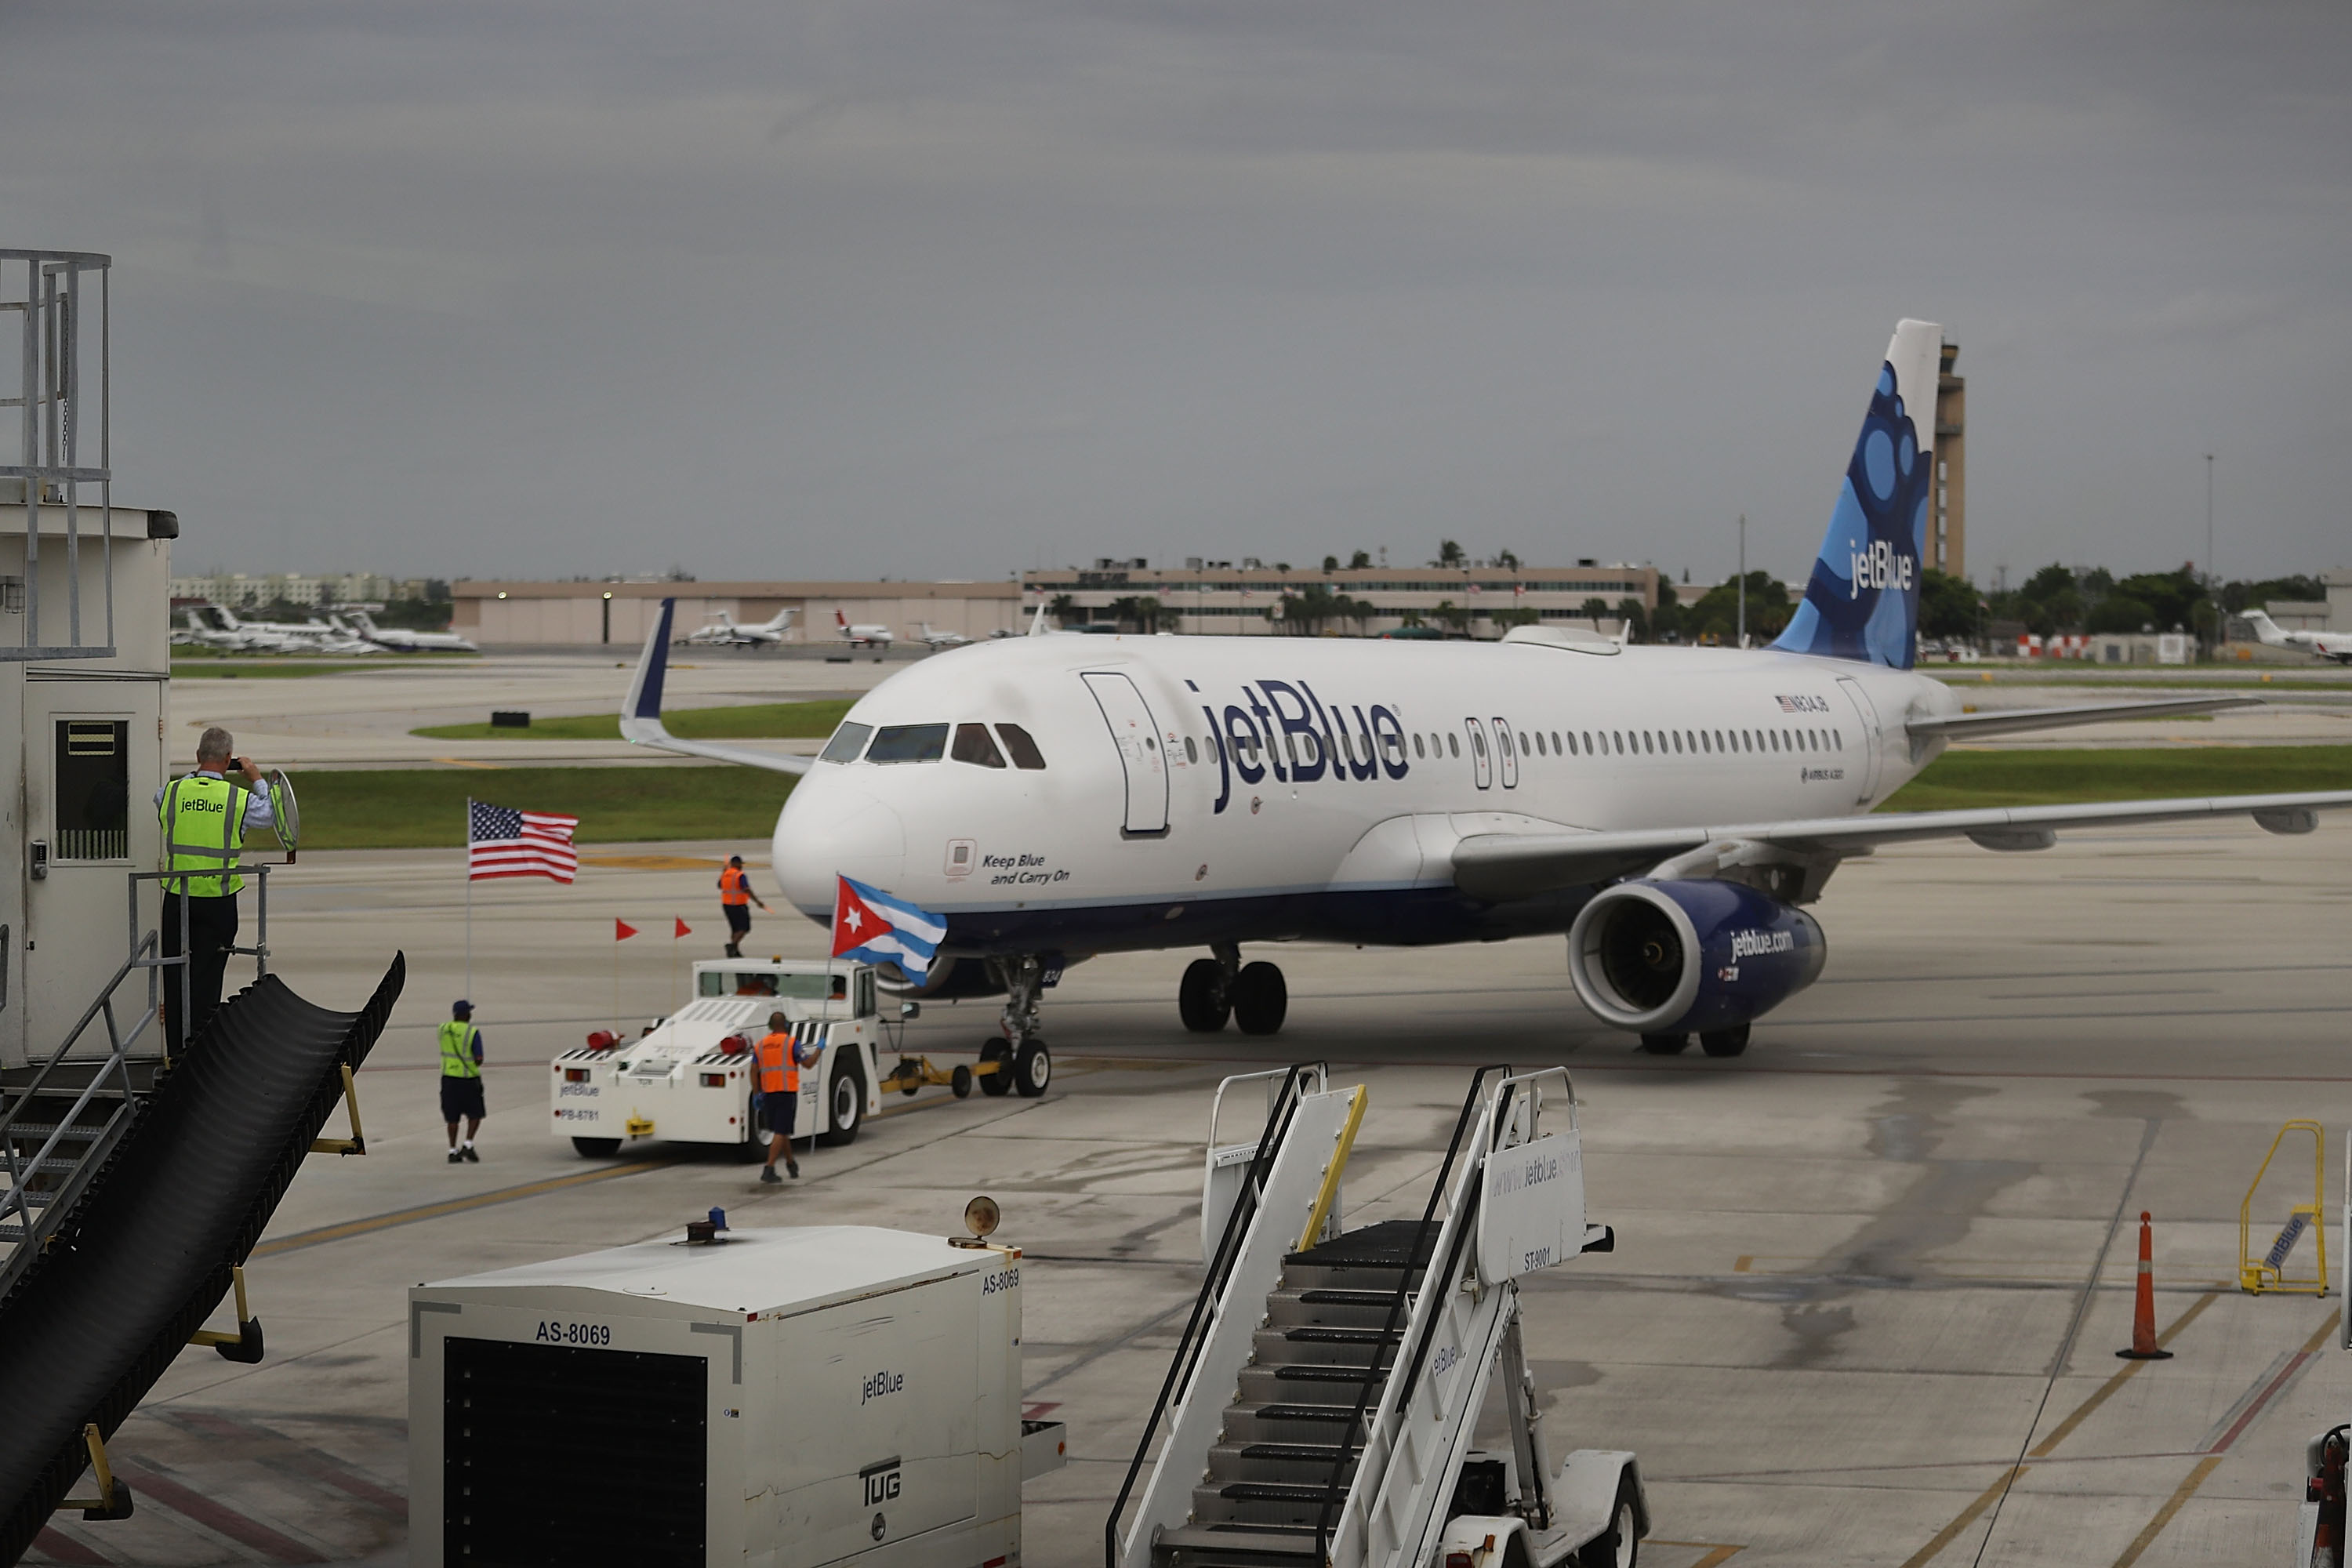 JetBlue Flight 387 pushes back from the gate at Fort Lauderdale-Hollywood International Airport as it prepares for take off to become the first scheduled commercial flight to Cuba since 1961 on August 31, 2016 in Fort Lauderdale, Florida. J